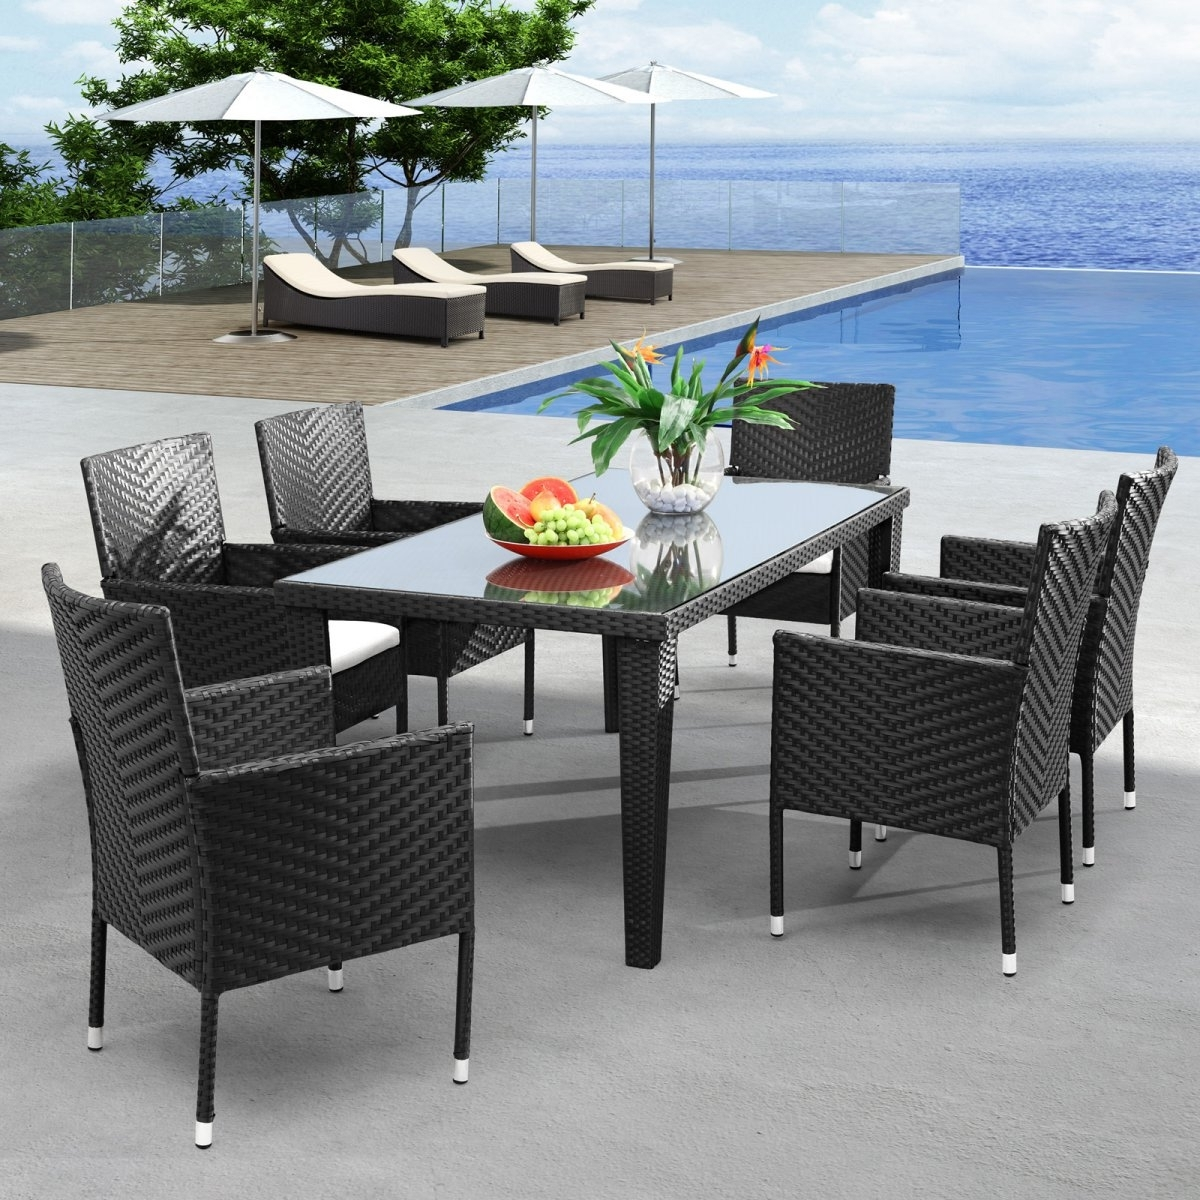 2017 Wicker And Glass Dining Tables intended for Gray Plastic Wicker Outdoor Dining Room Set With Glass Dining Table